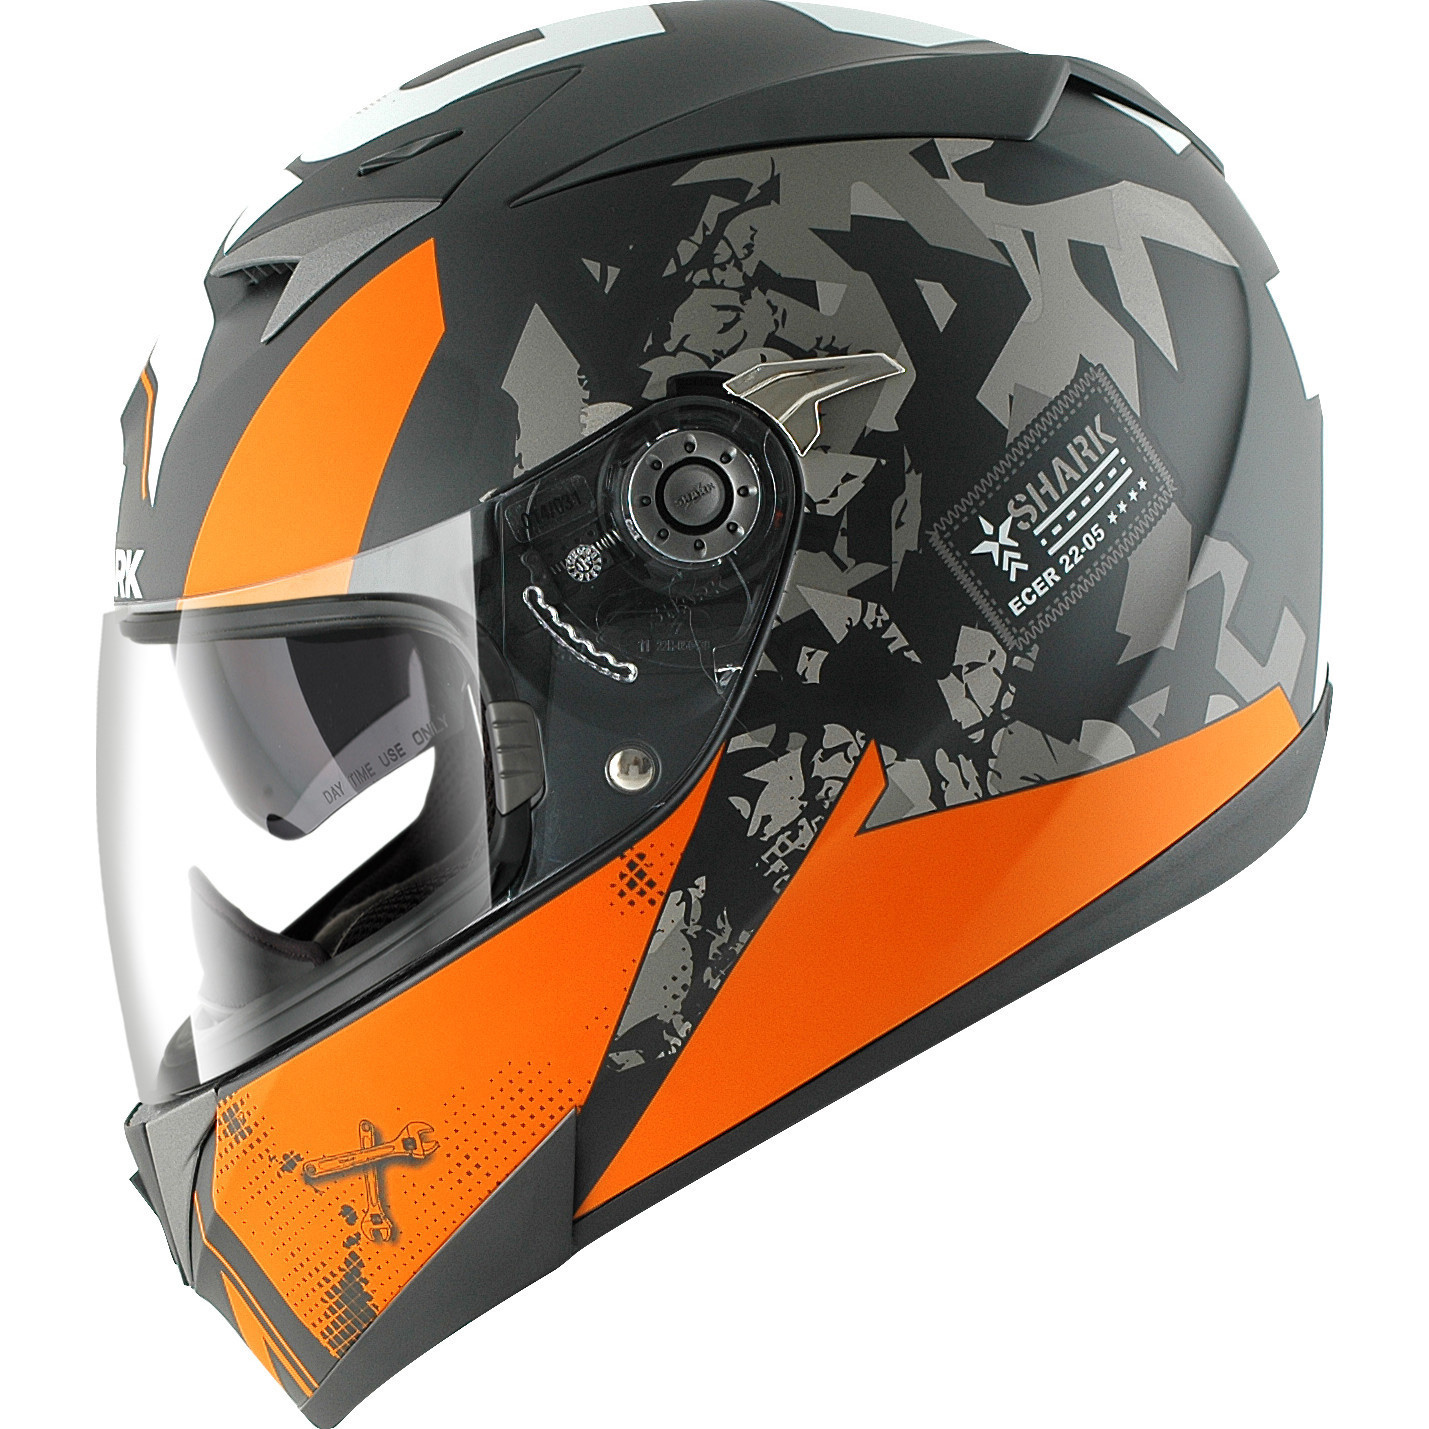 shark s700 s trax matt black orange motorcycle helmet koa. Black Bedroom Furniture Sets. Home Design Ideas